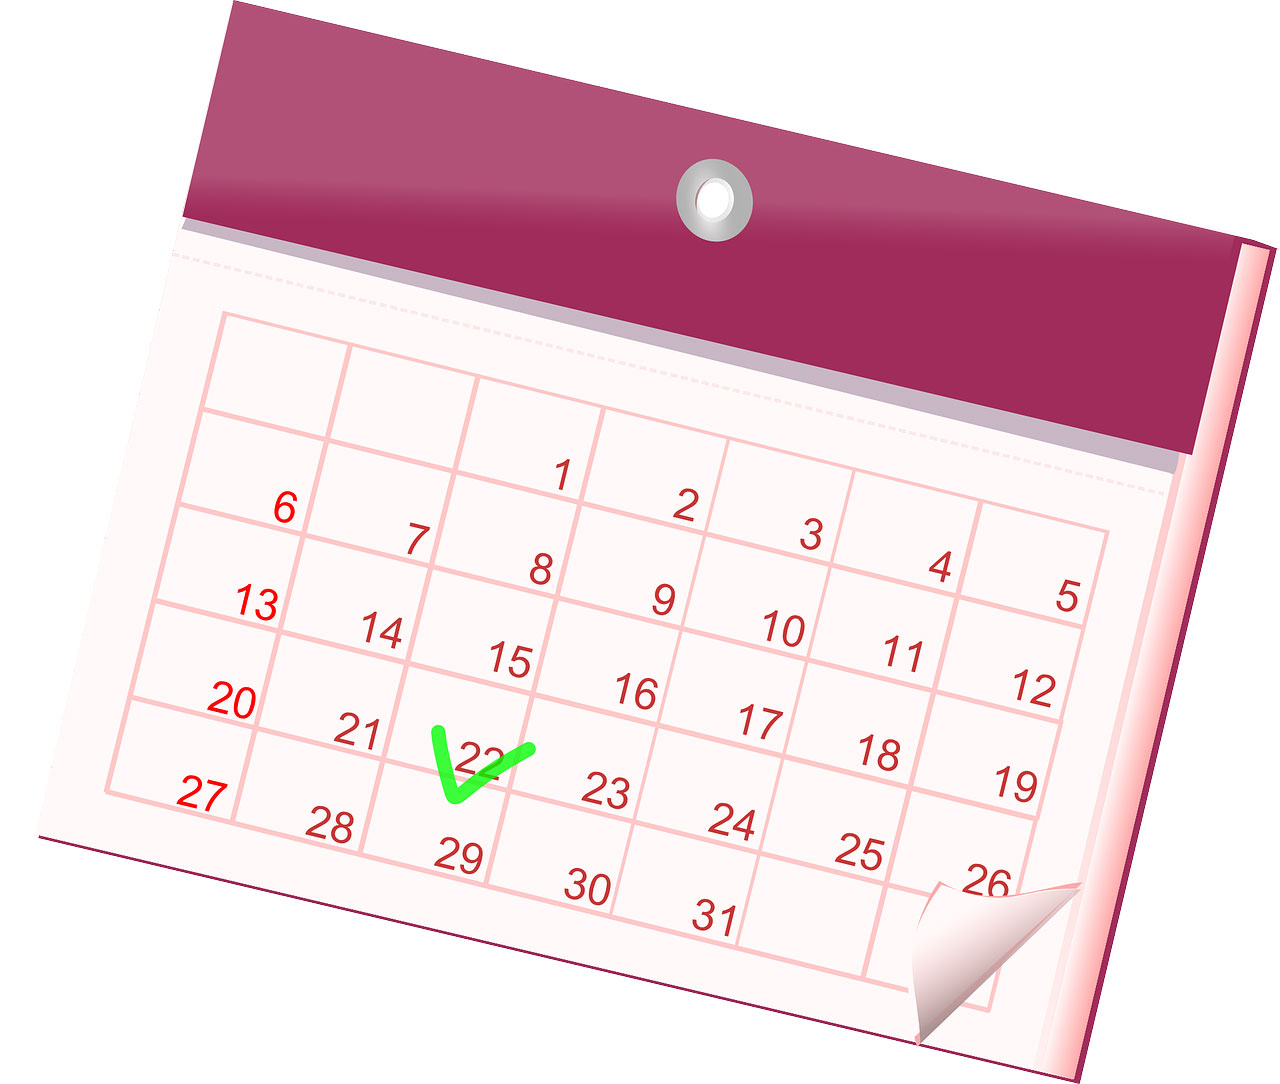 Common calendar, Packet papers, April 16